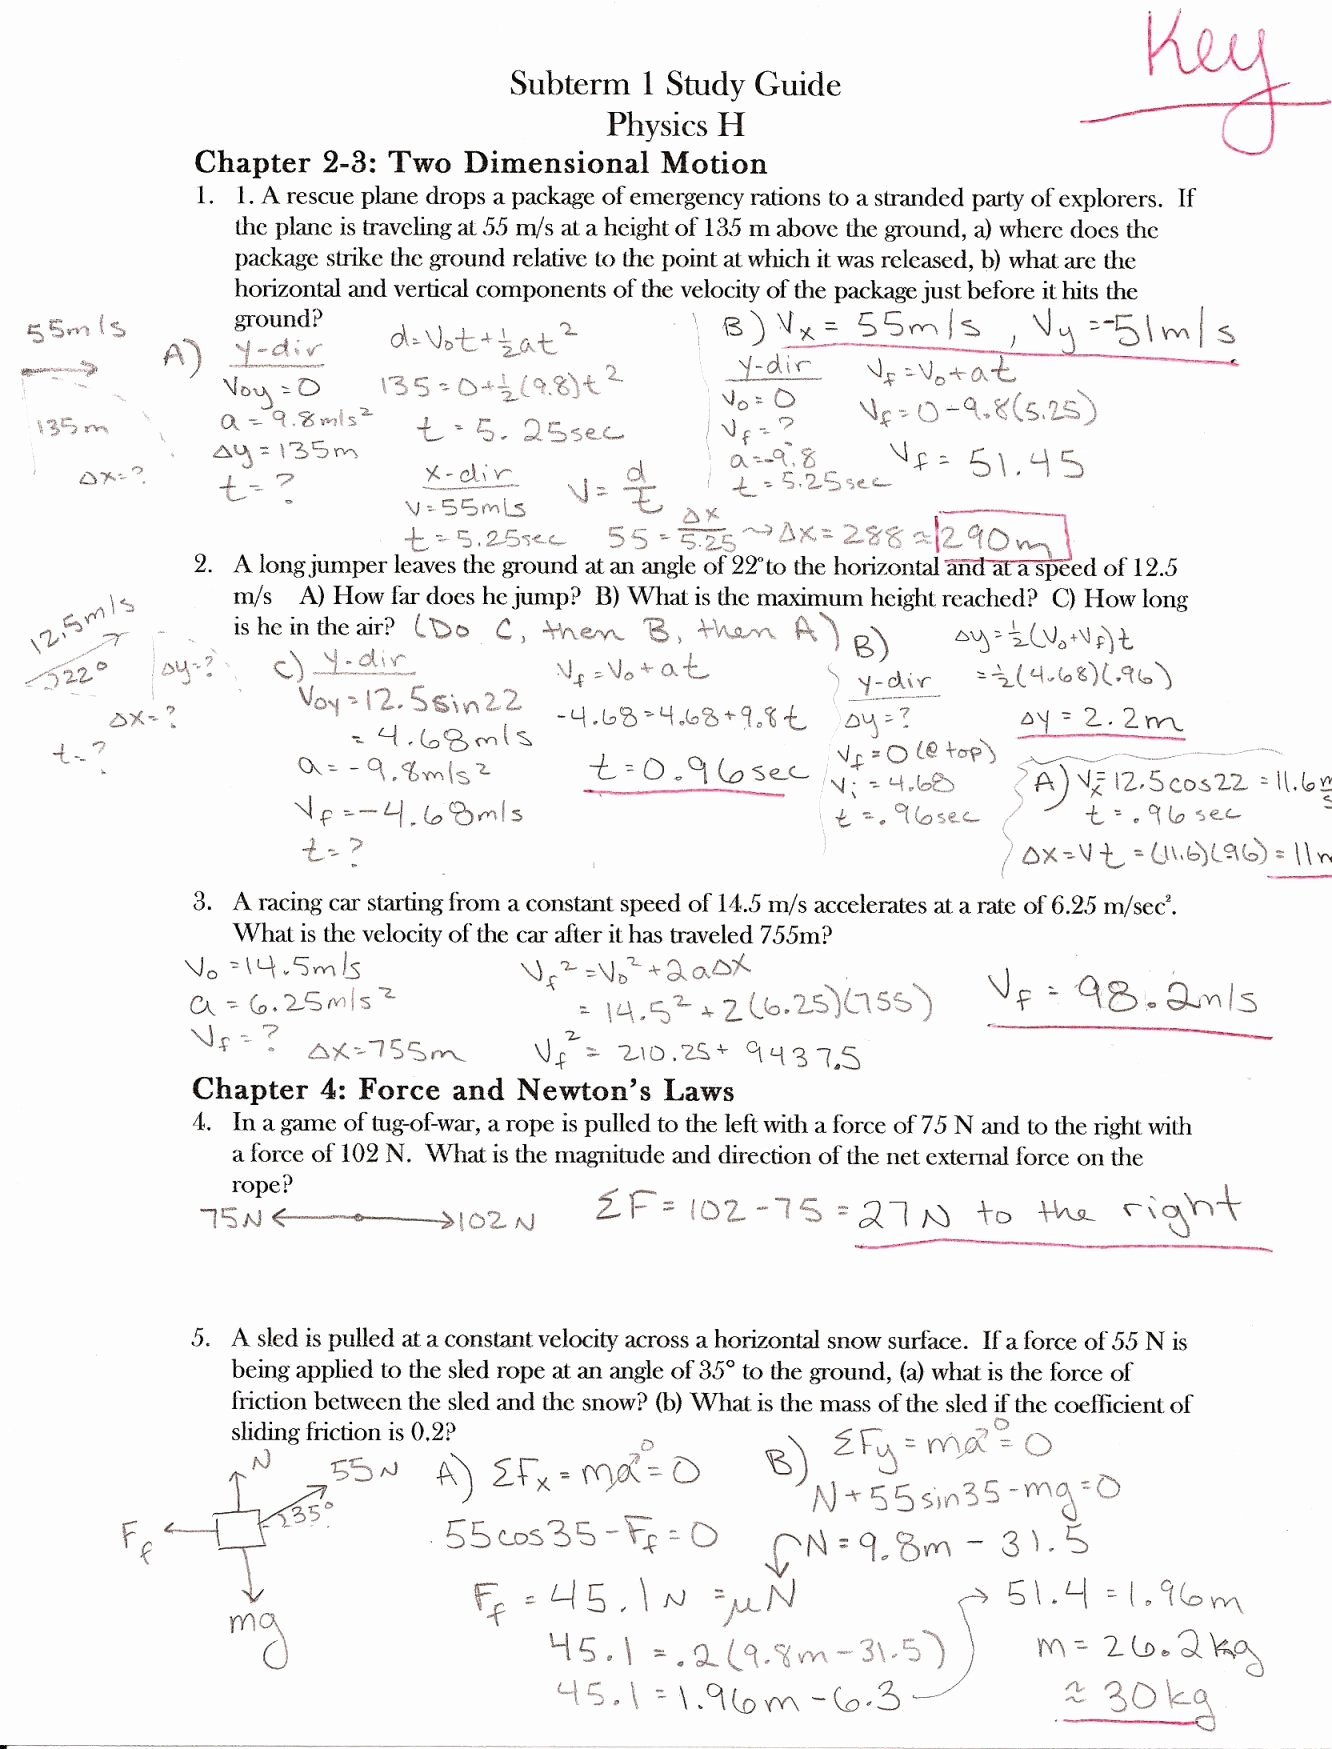 Bill Nye Magnetism Worksheet Answers Unique Bill Nye Magnetism Worksheet Answers